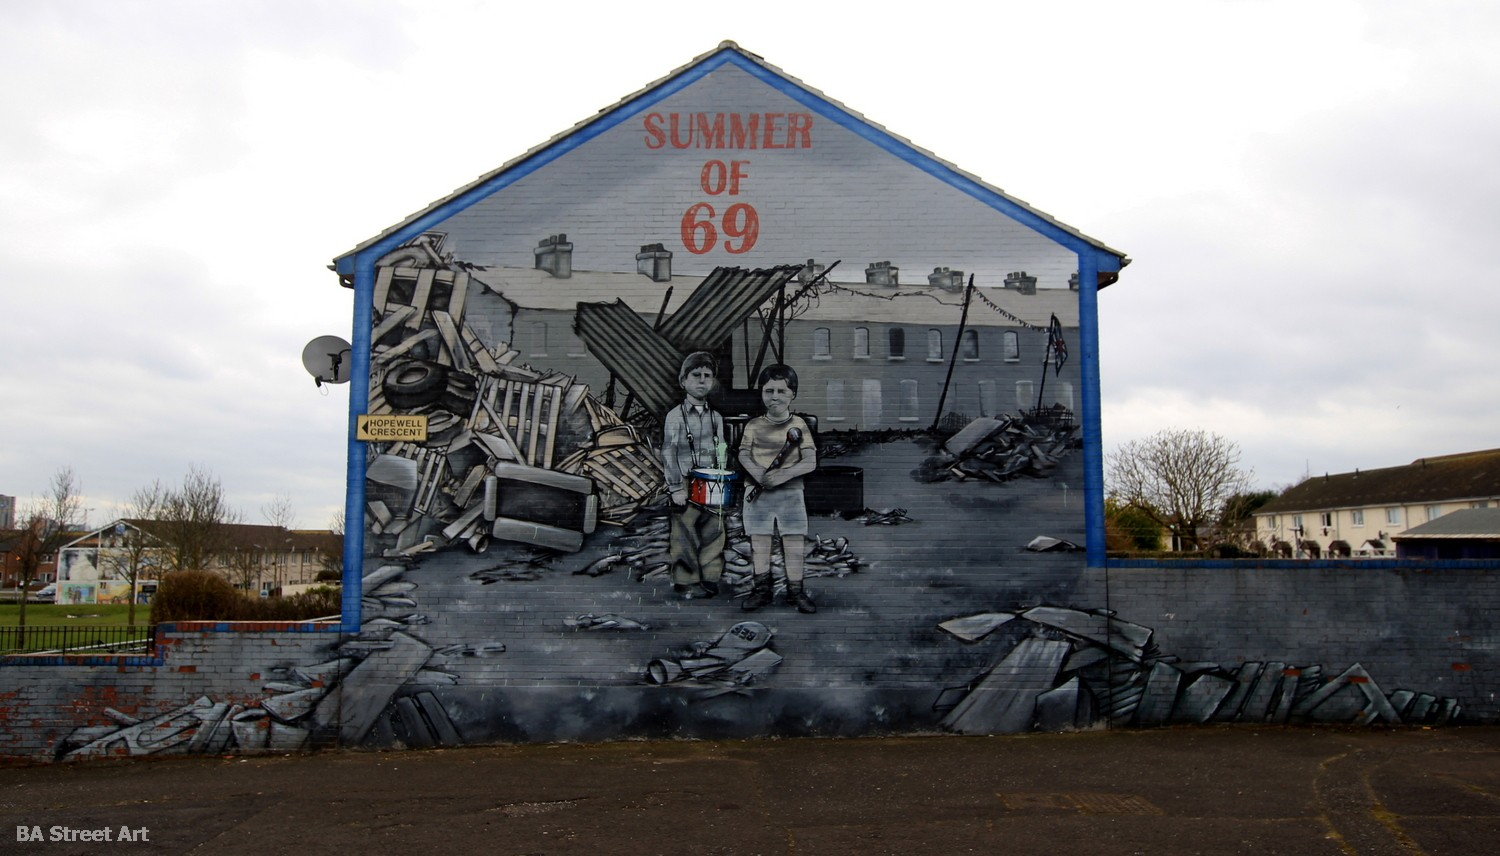 loyalist mural belfast bombing 1969 summer of 69 shankill estate protestant